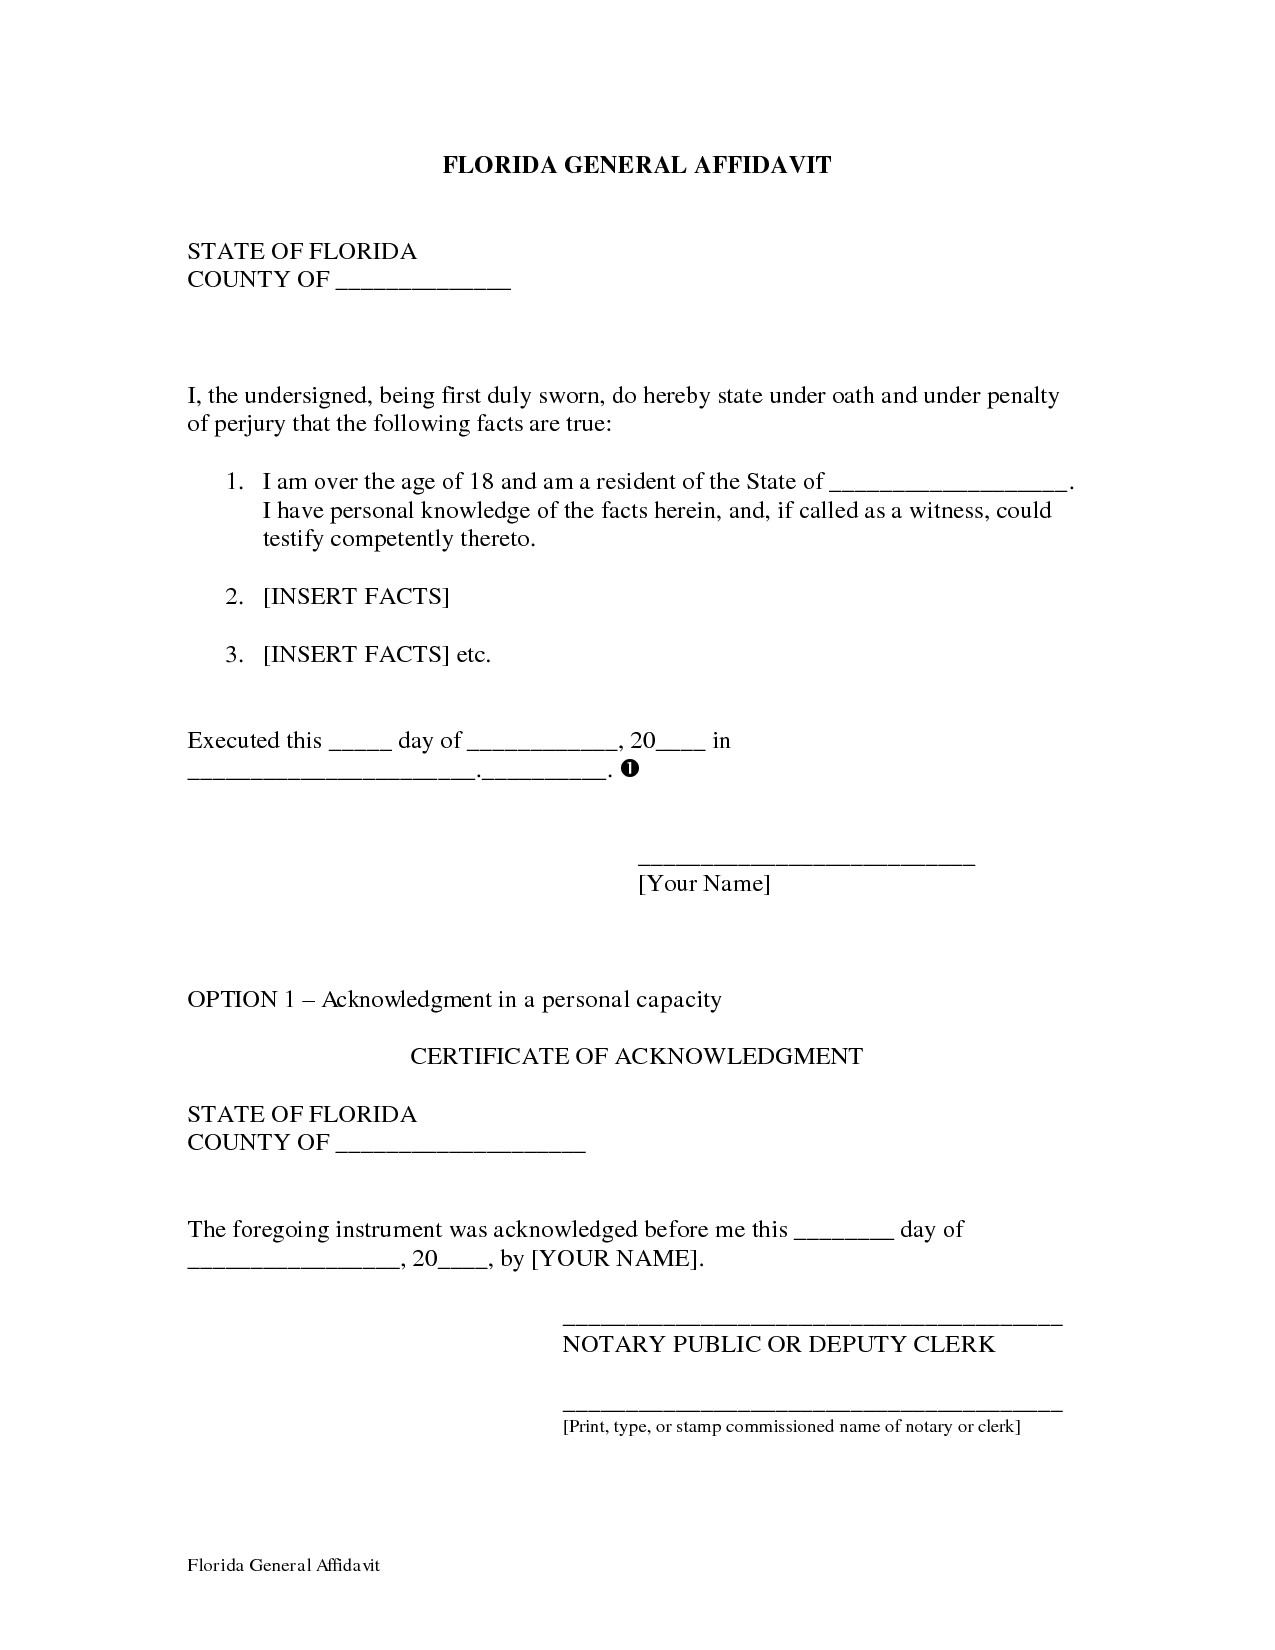 Affidavit Of Facts Template Best Photos Of Florida Notarized Letter Format Notary Statement .